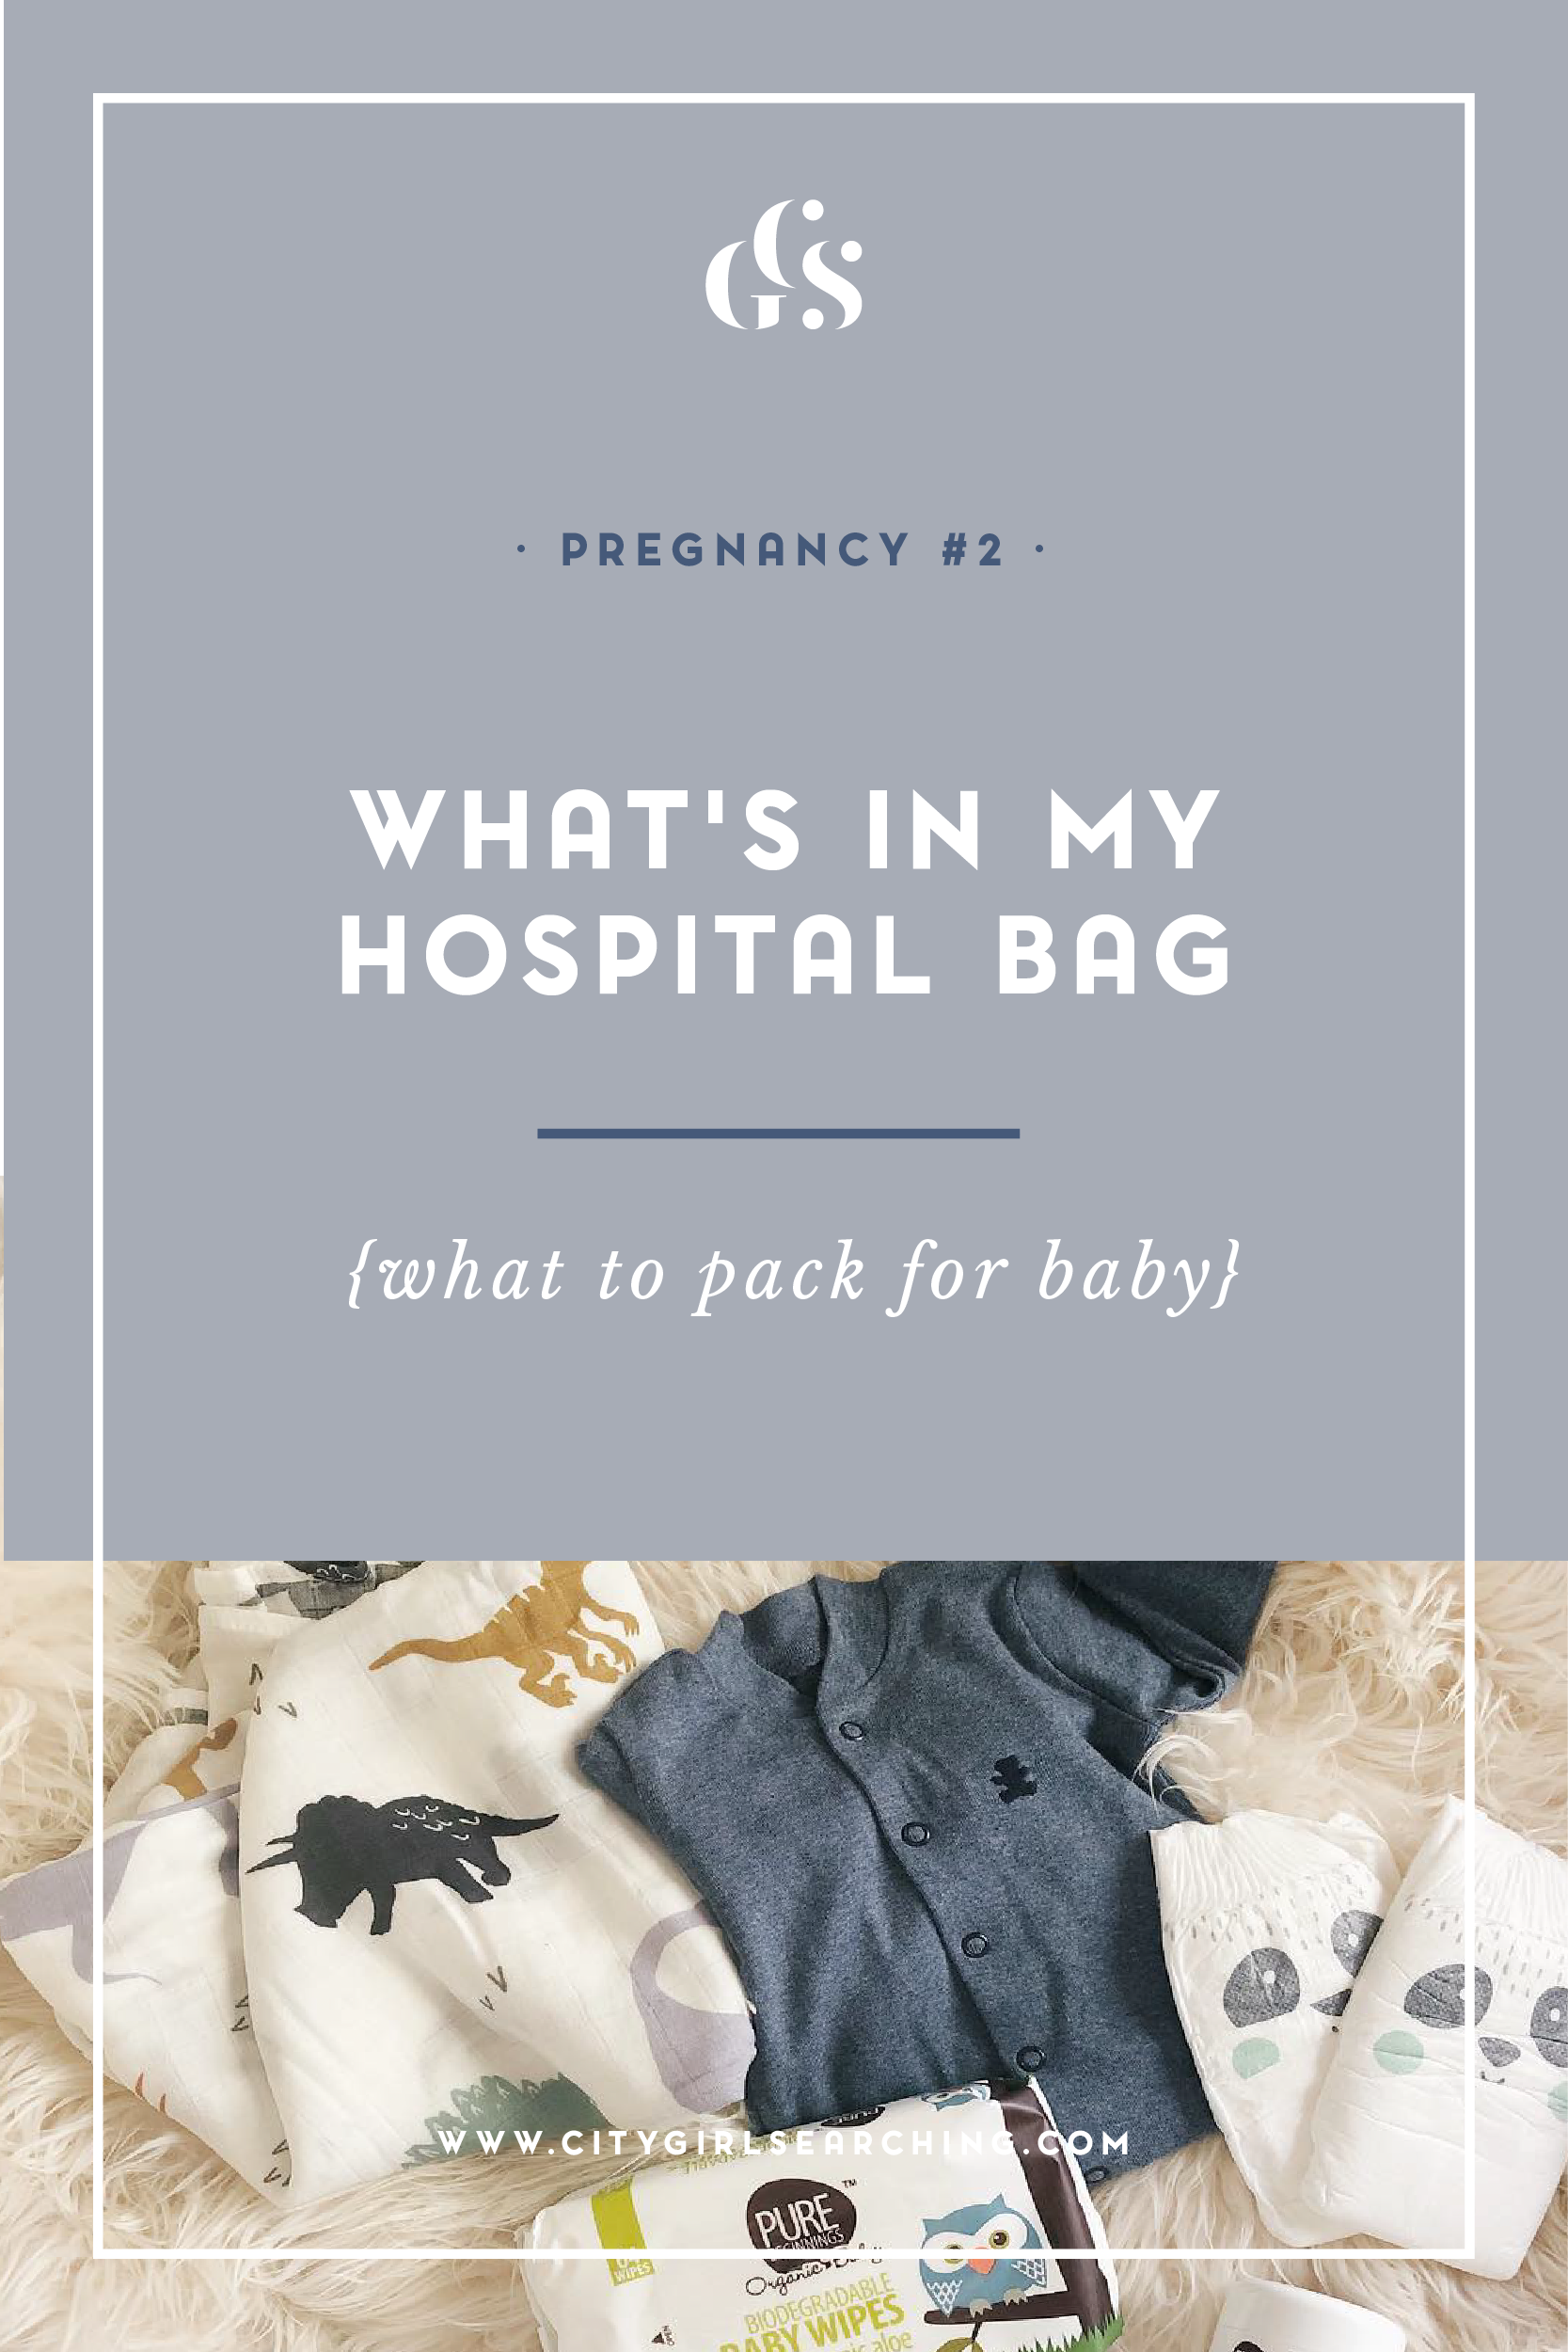 What to pack for for hospital for baby-01.png